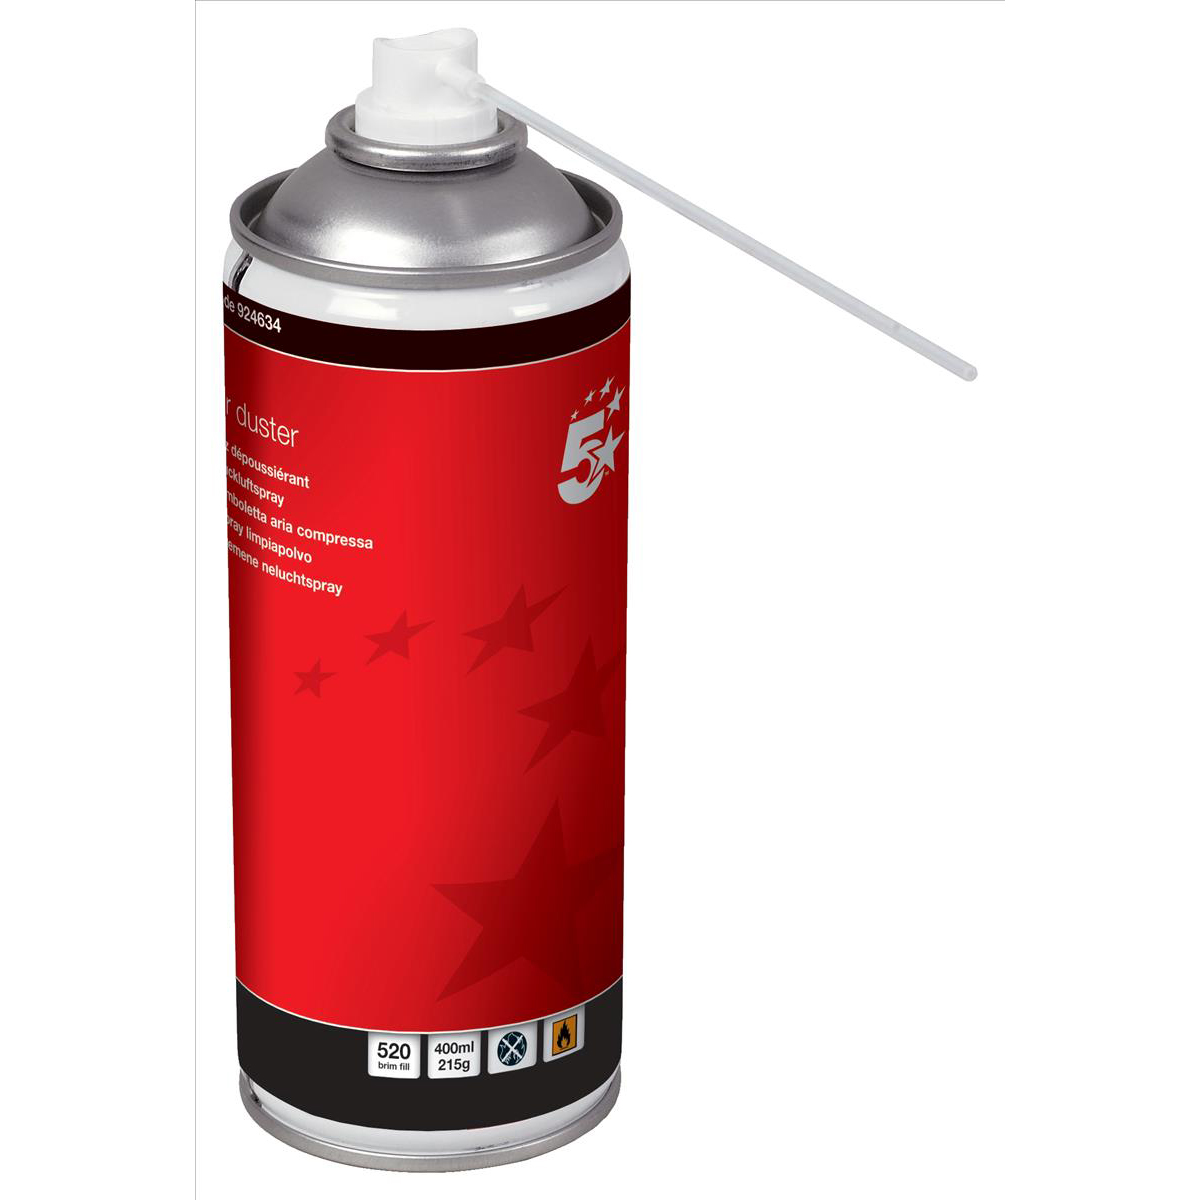 Keyboard 5 Star Office Spray Duster Can HFC Free Compressed Gas Flammable 400ml Pack 4